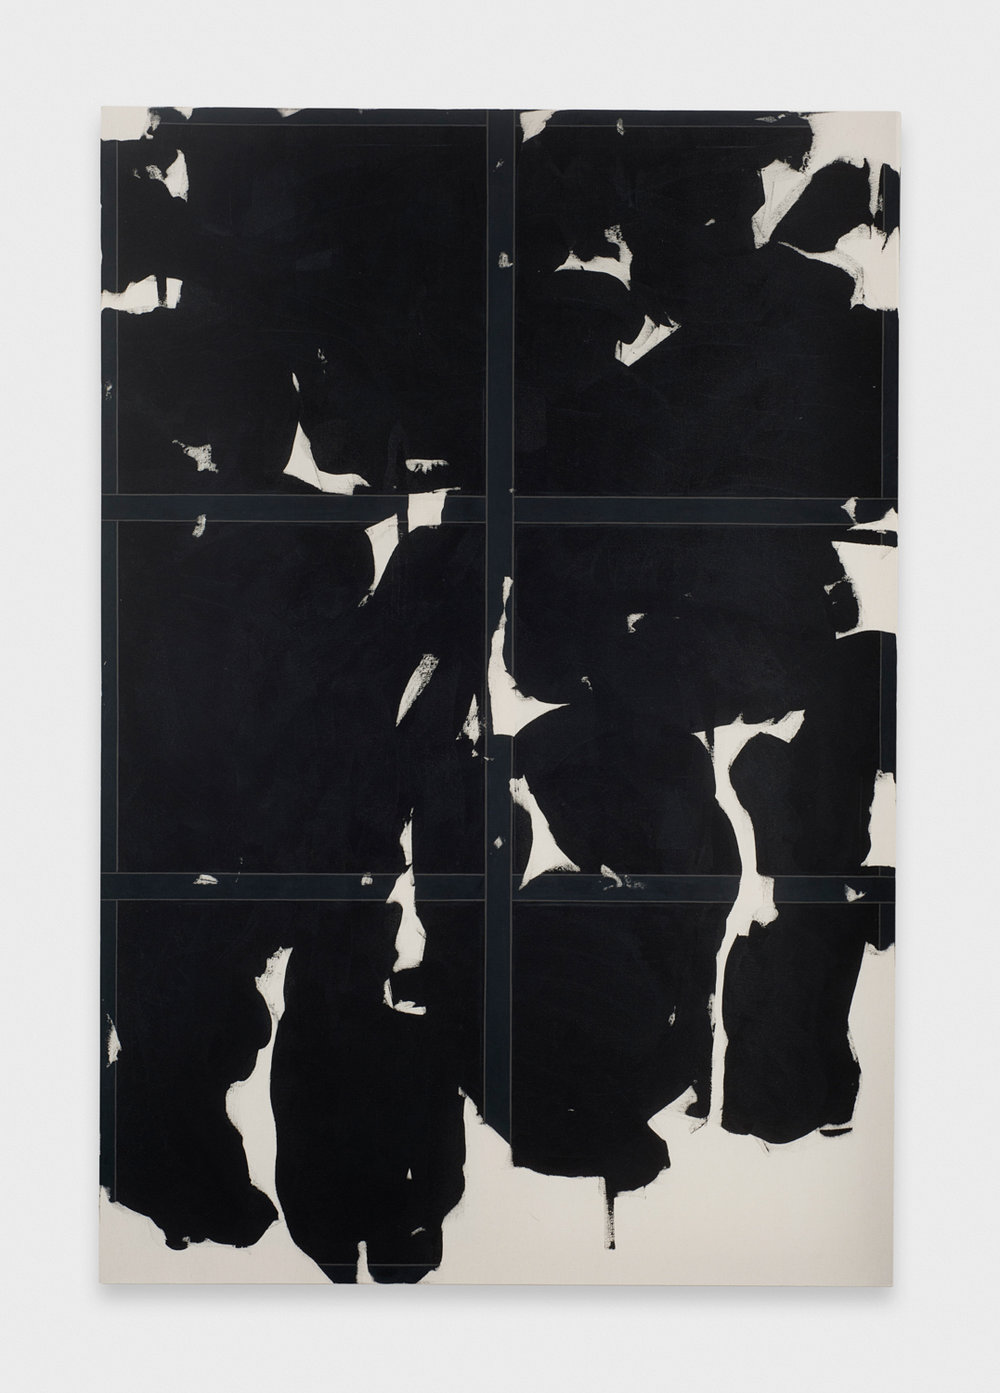 Zak Prekop  Untitled (Black)  2011 Oil on canvas 84h x 57w in ZP140